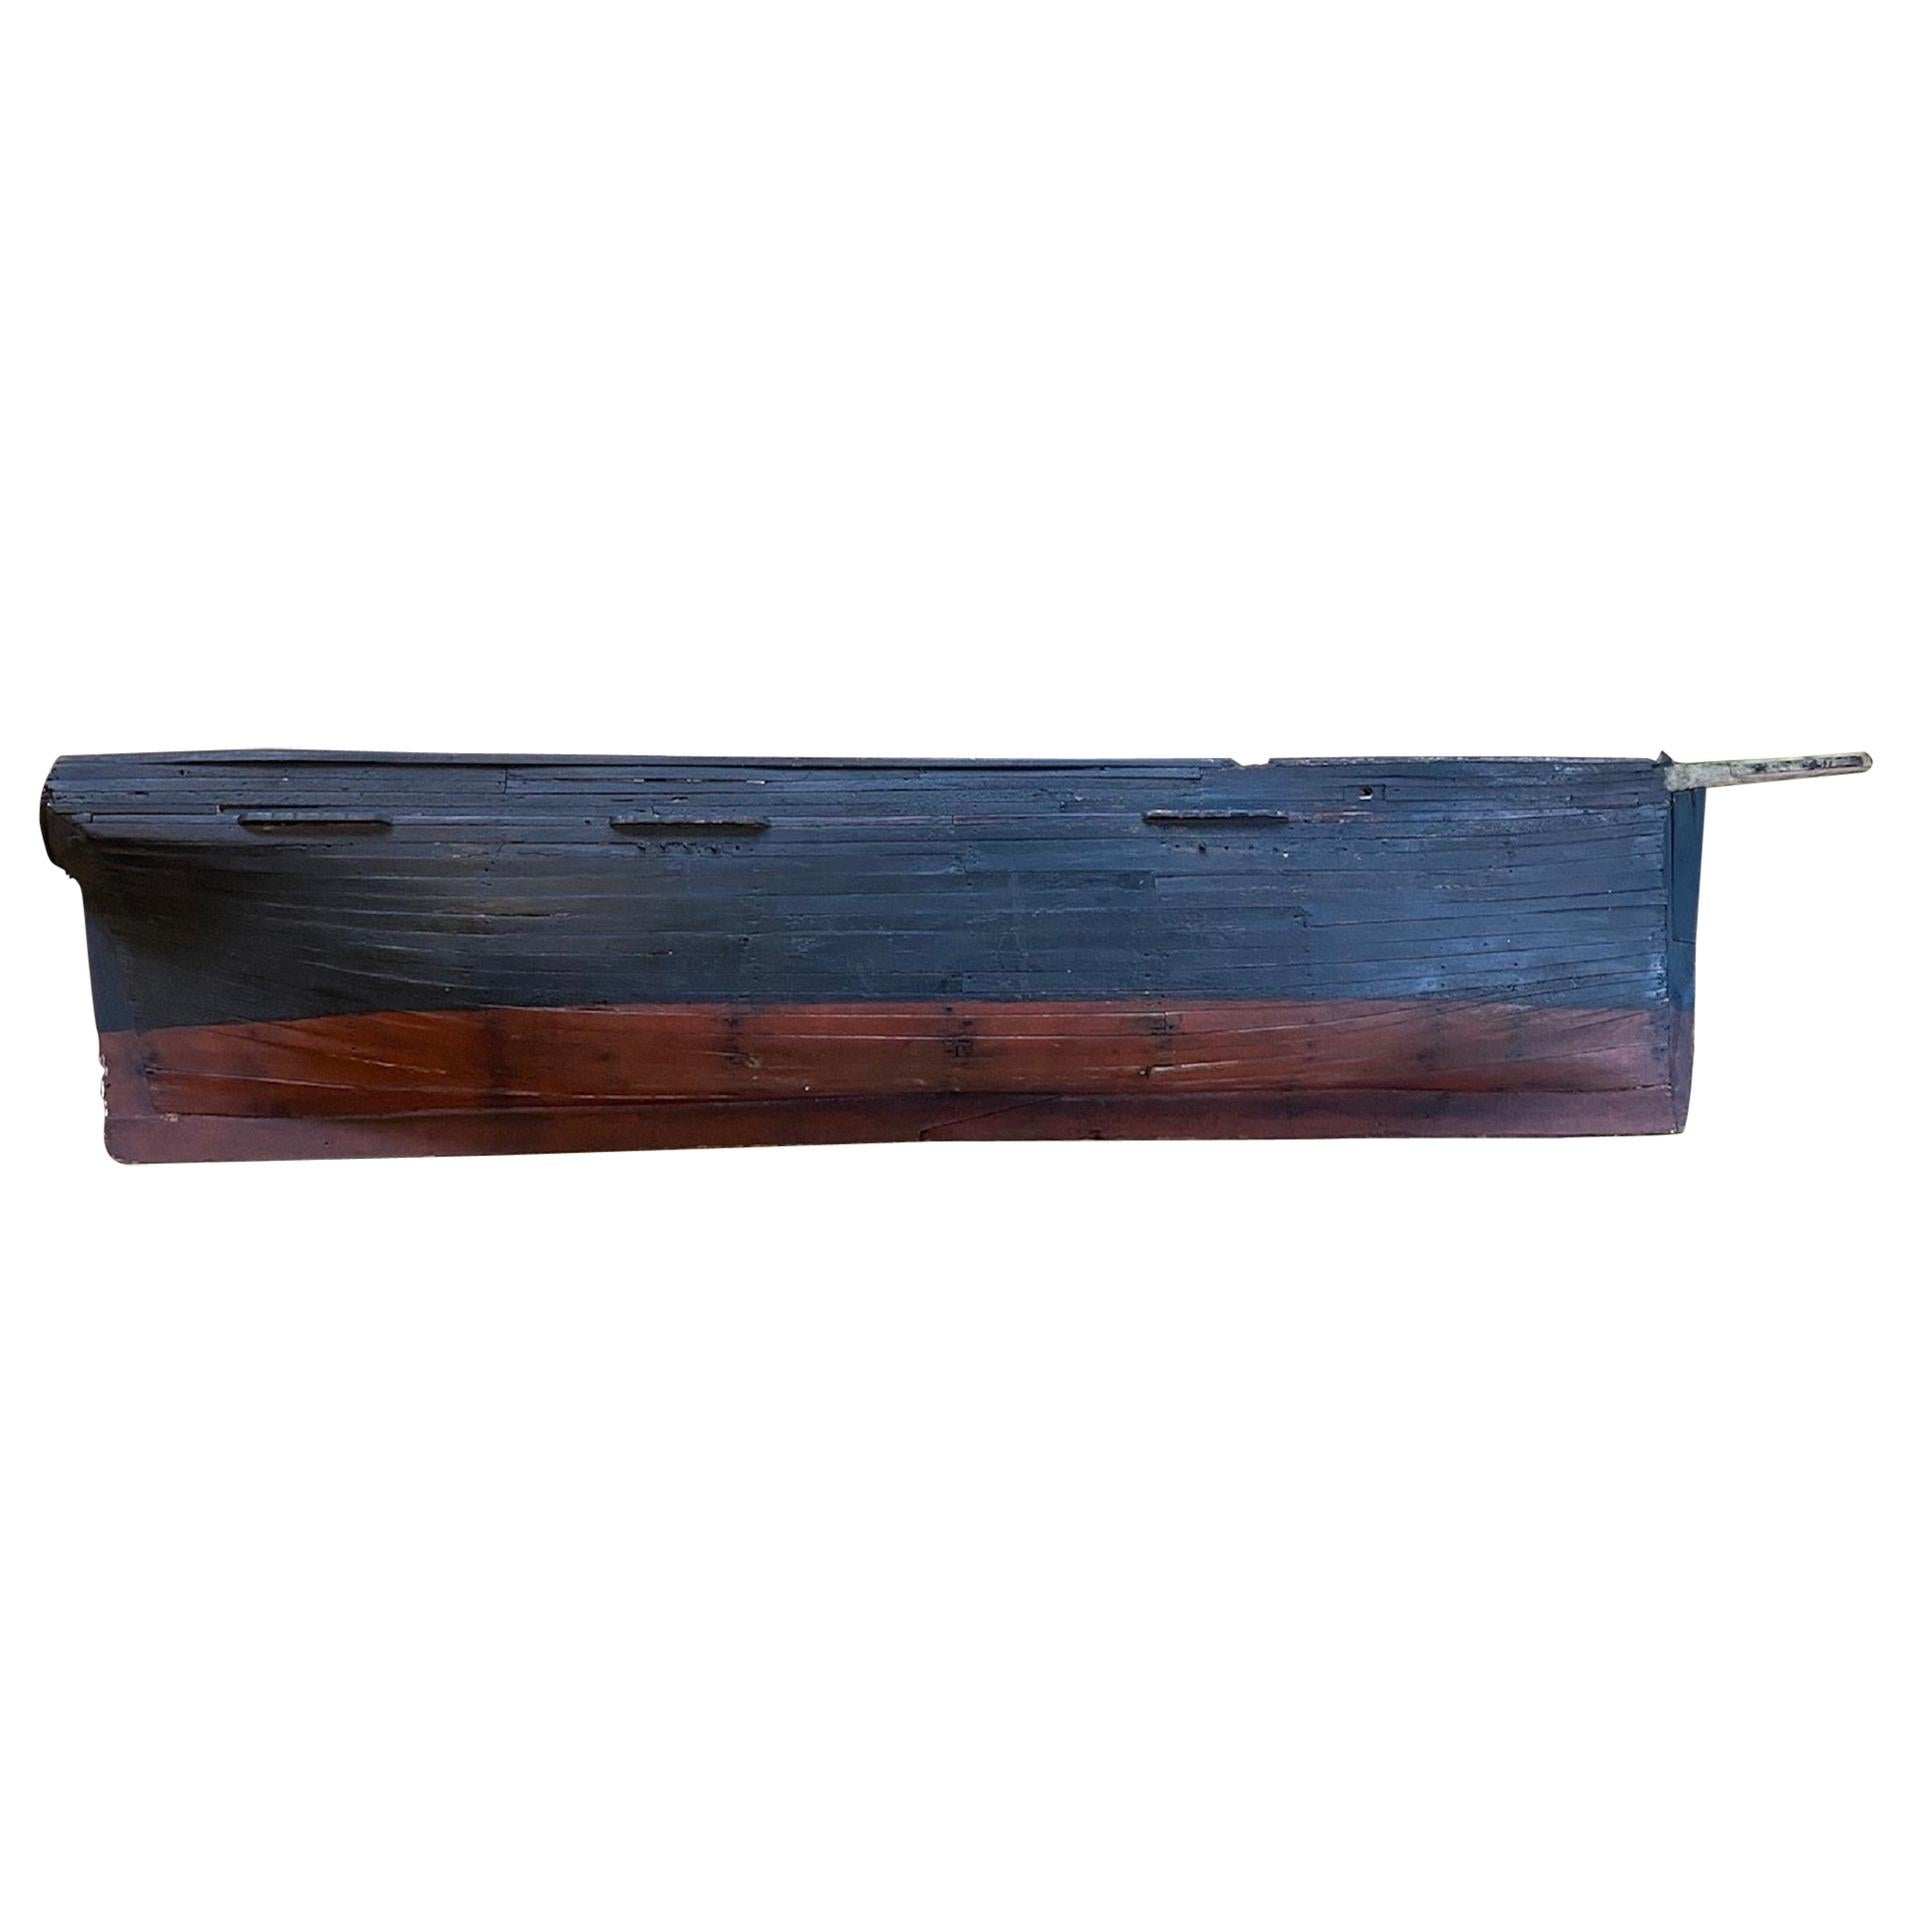 Large 19th Century Presentation Half Hull Model of a Whale Ship